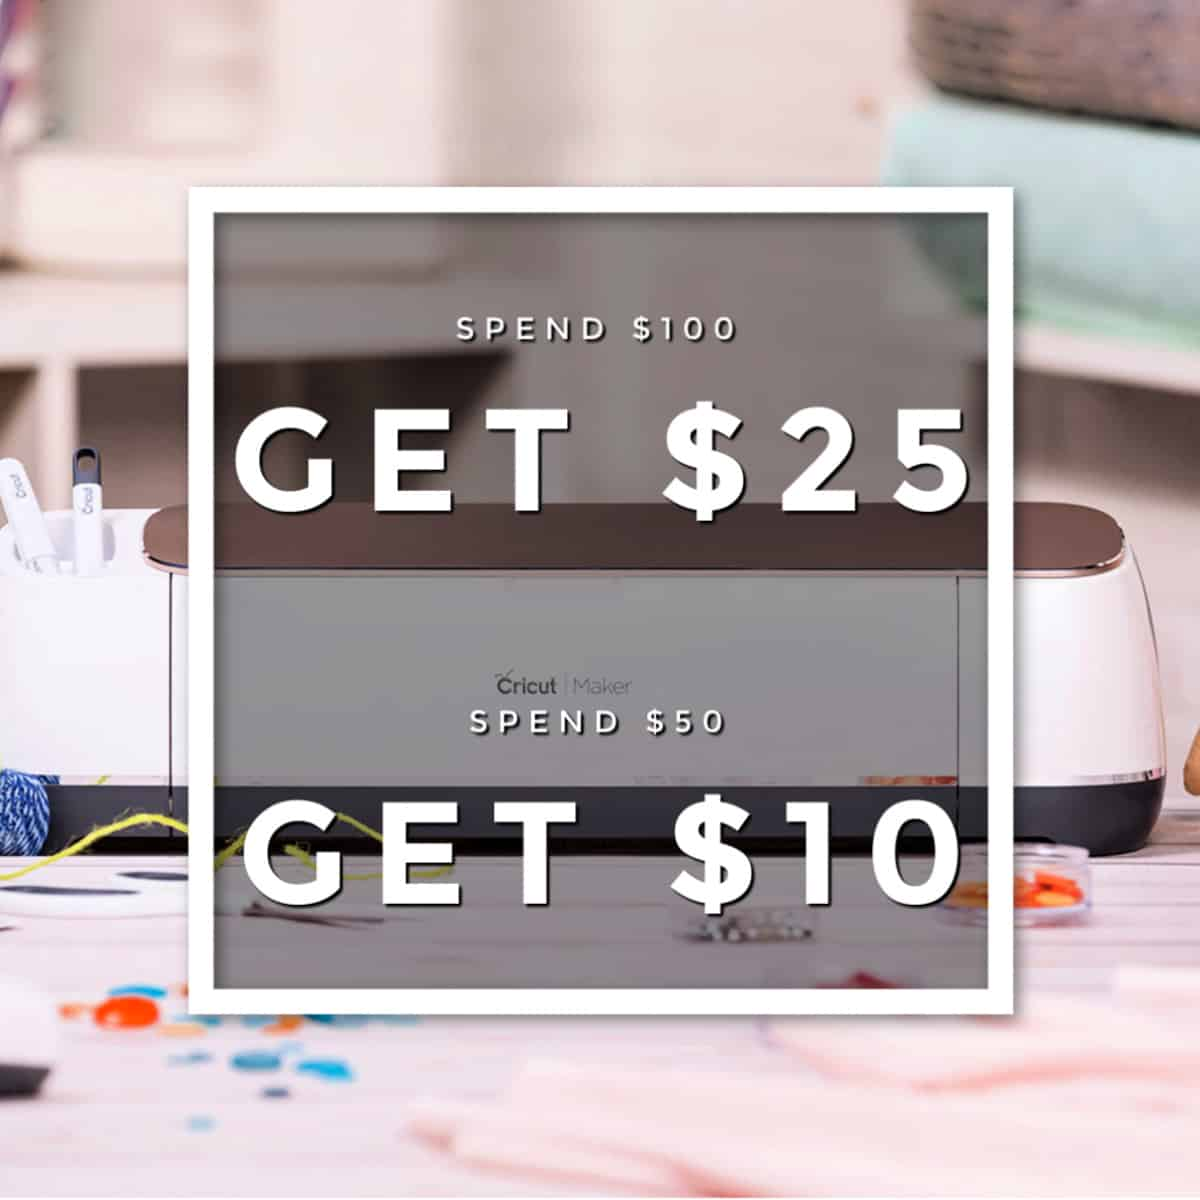 Cricut cyber monday and black friday coupon offer